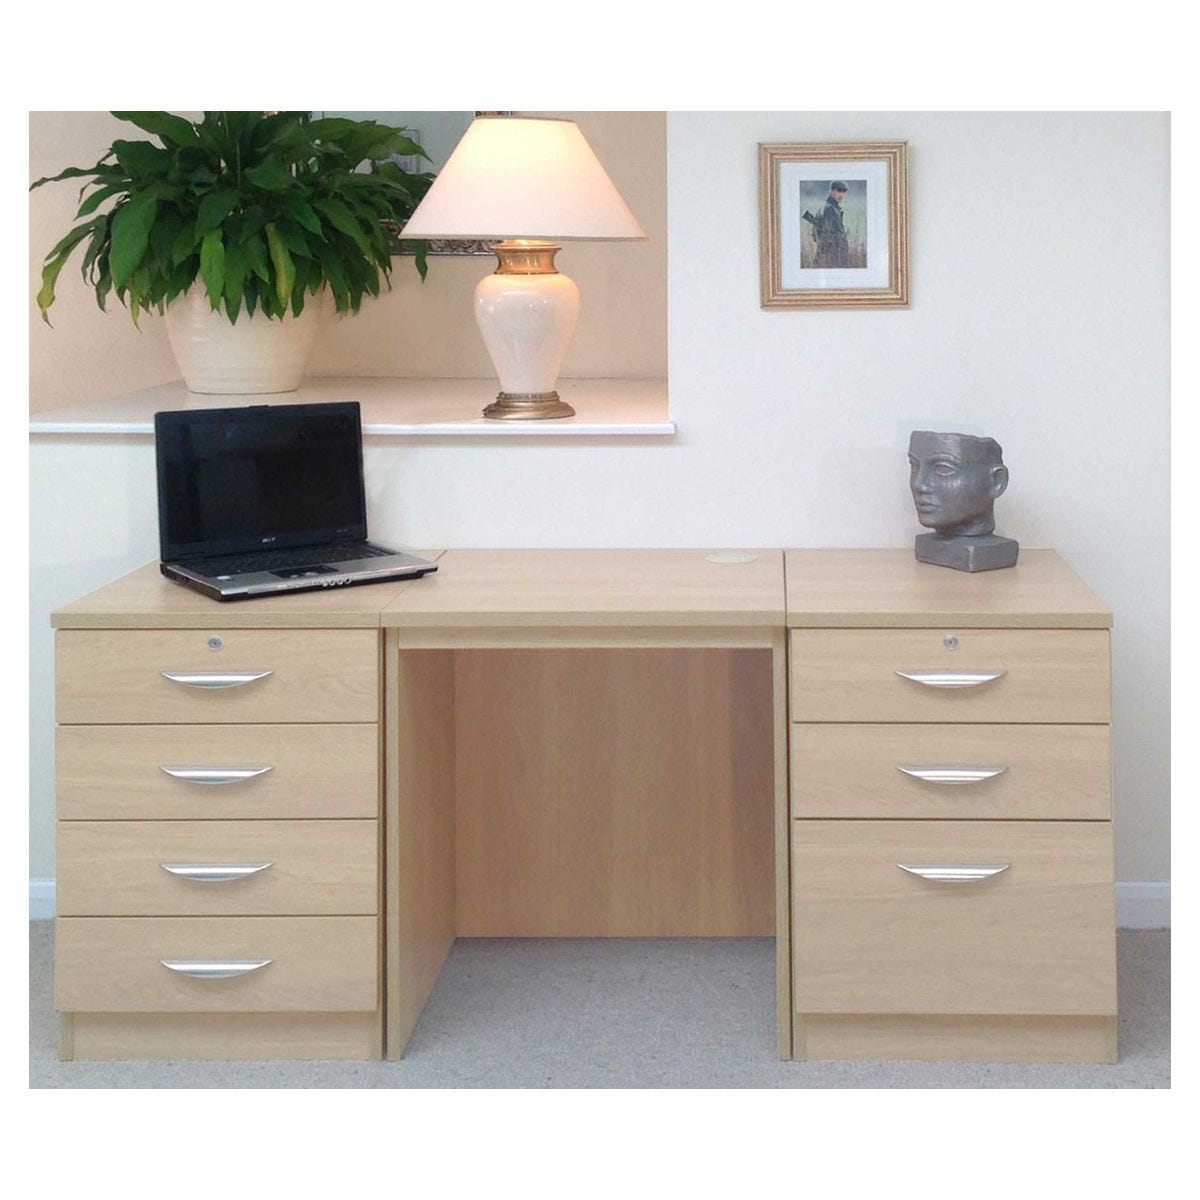 R White Home Office Furniture Desk Set with Double Drawers, Beech